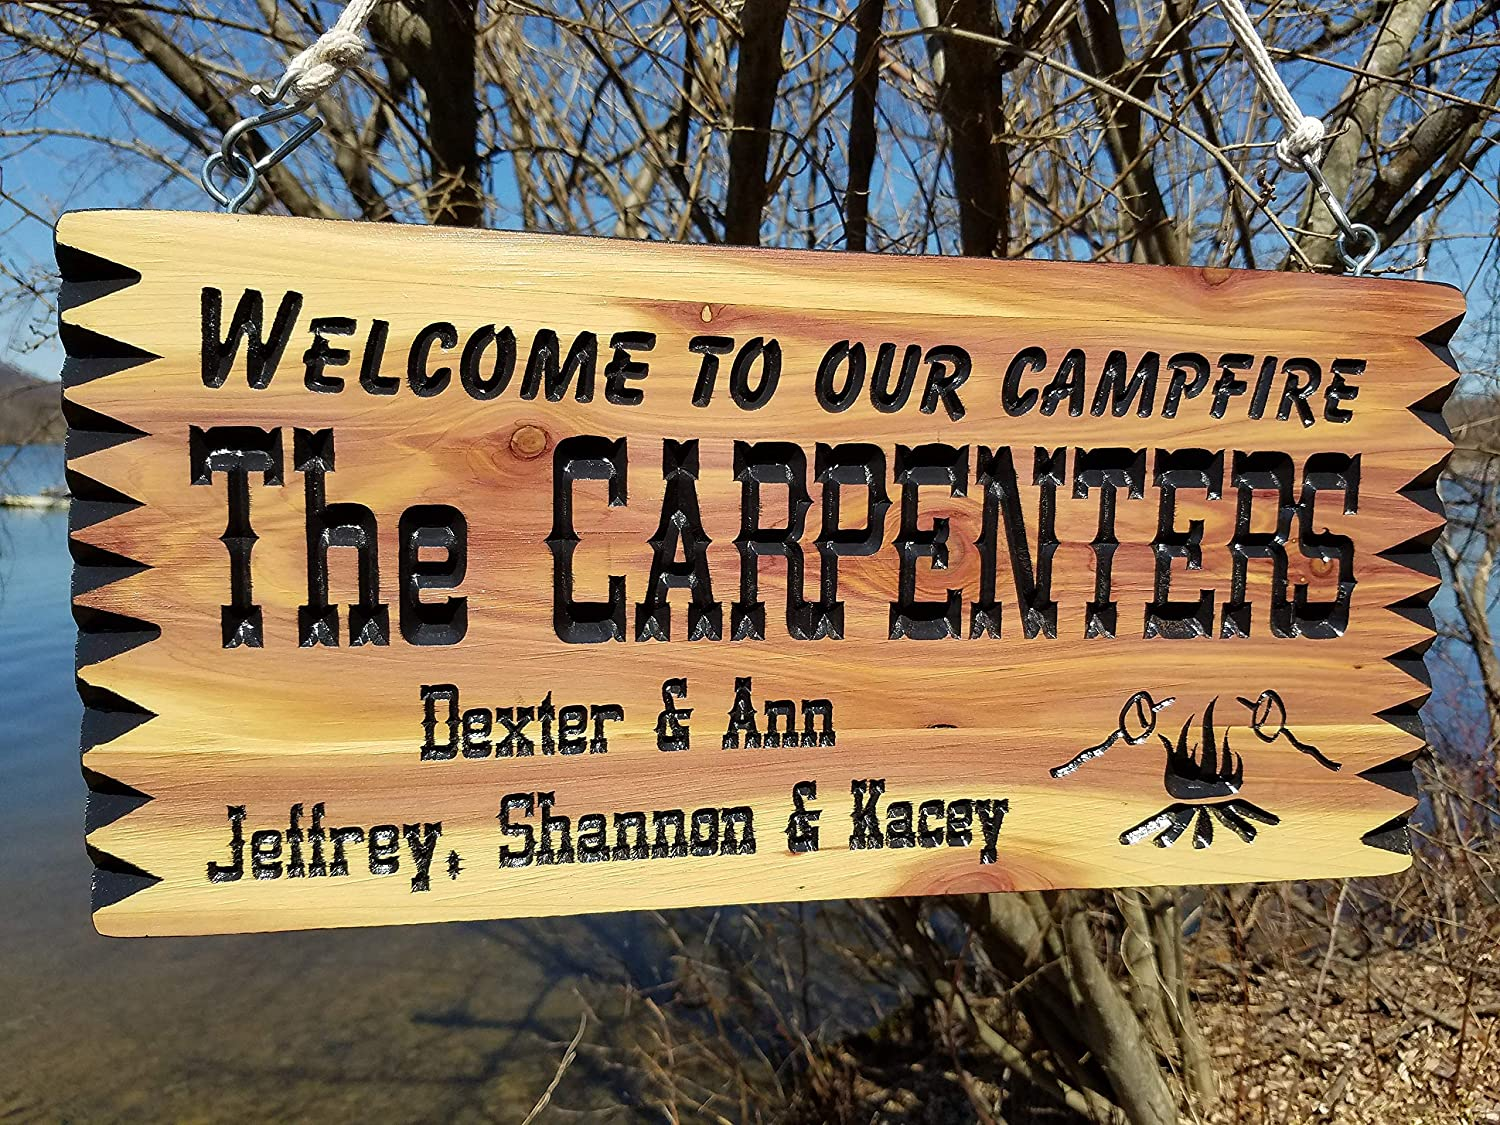 Mildred Rob Personalized Camping Signs Rv Signs Campfire Image Campsite Sign Custom Rv Sign Wooden Camper Signs Camper Sign 19 X 9